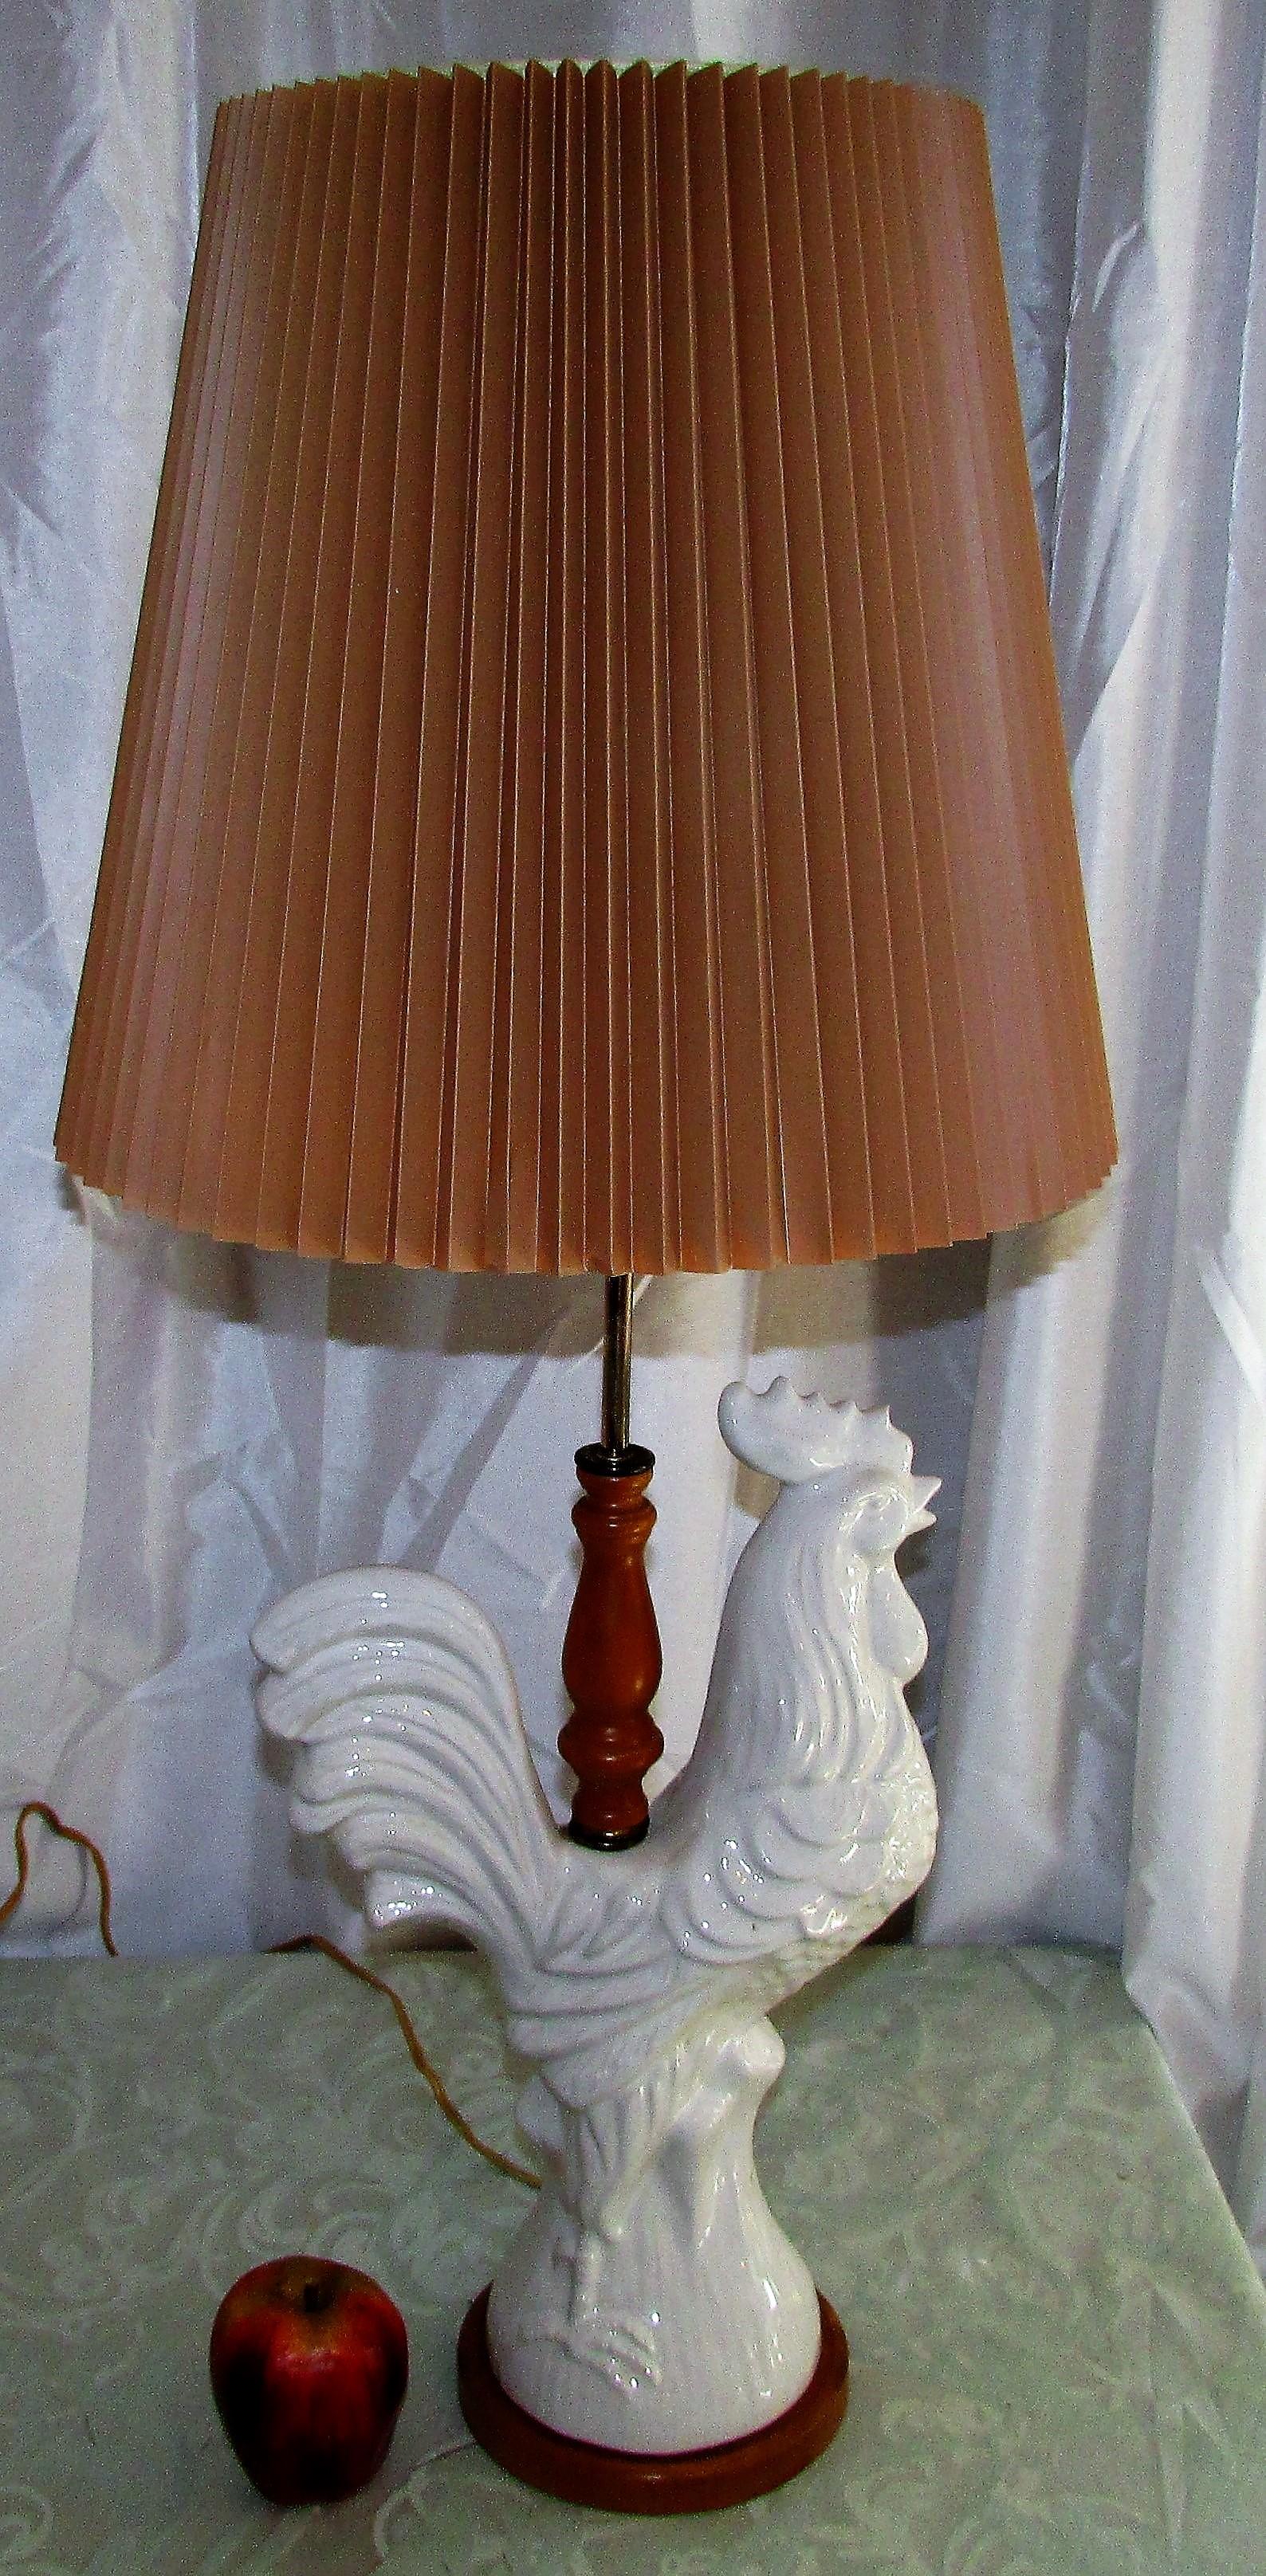 Porcelain Rooster Table Lamp With Pleated Shade_69644A ...